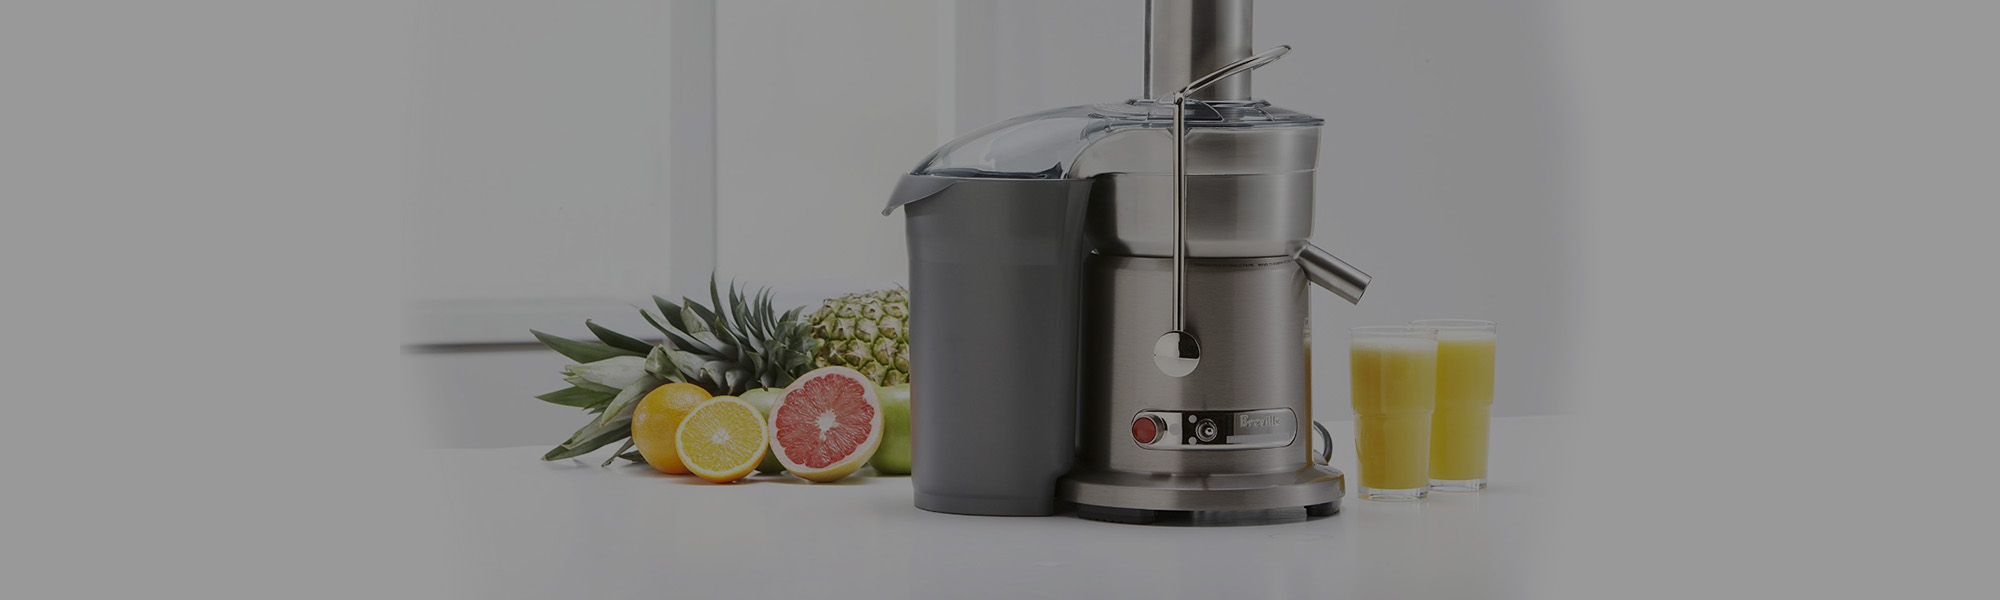 Black & Decker 400-Watt Fruit<br>and Vegetable Juice Extractor